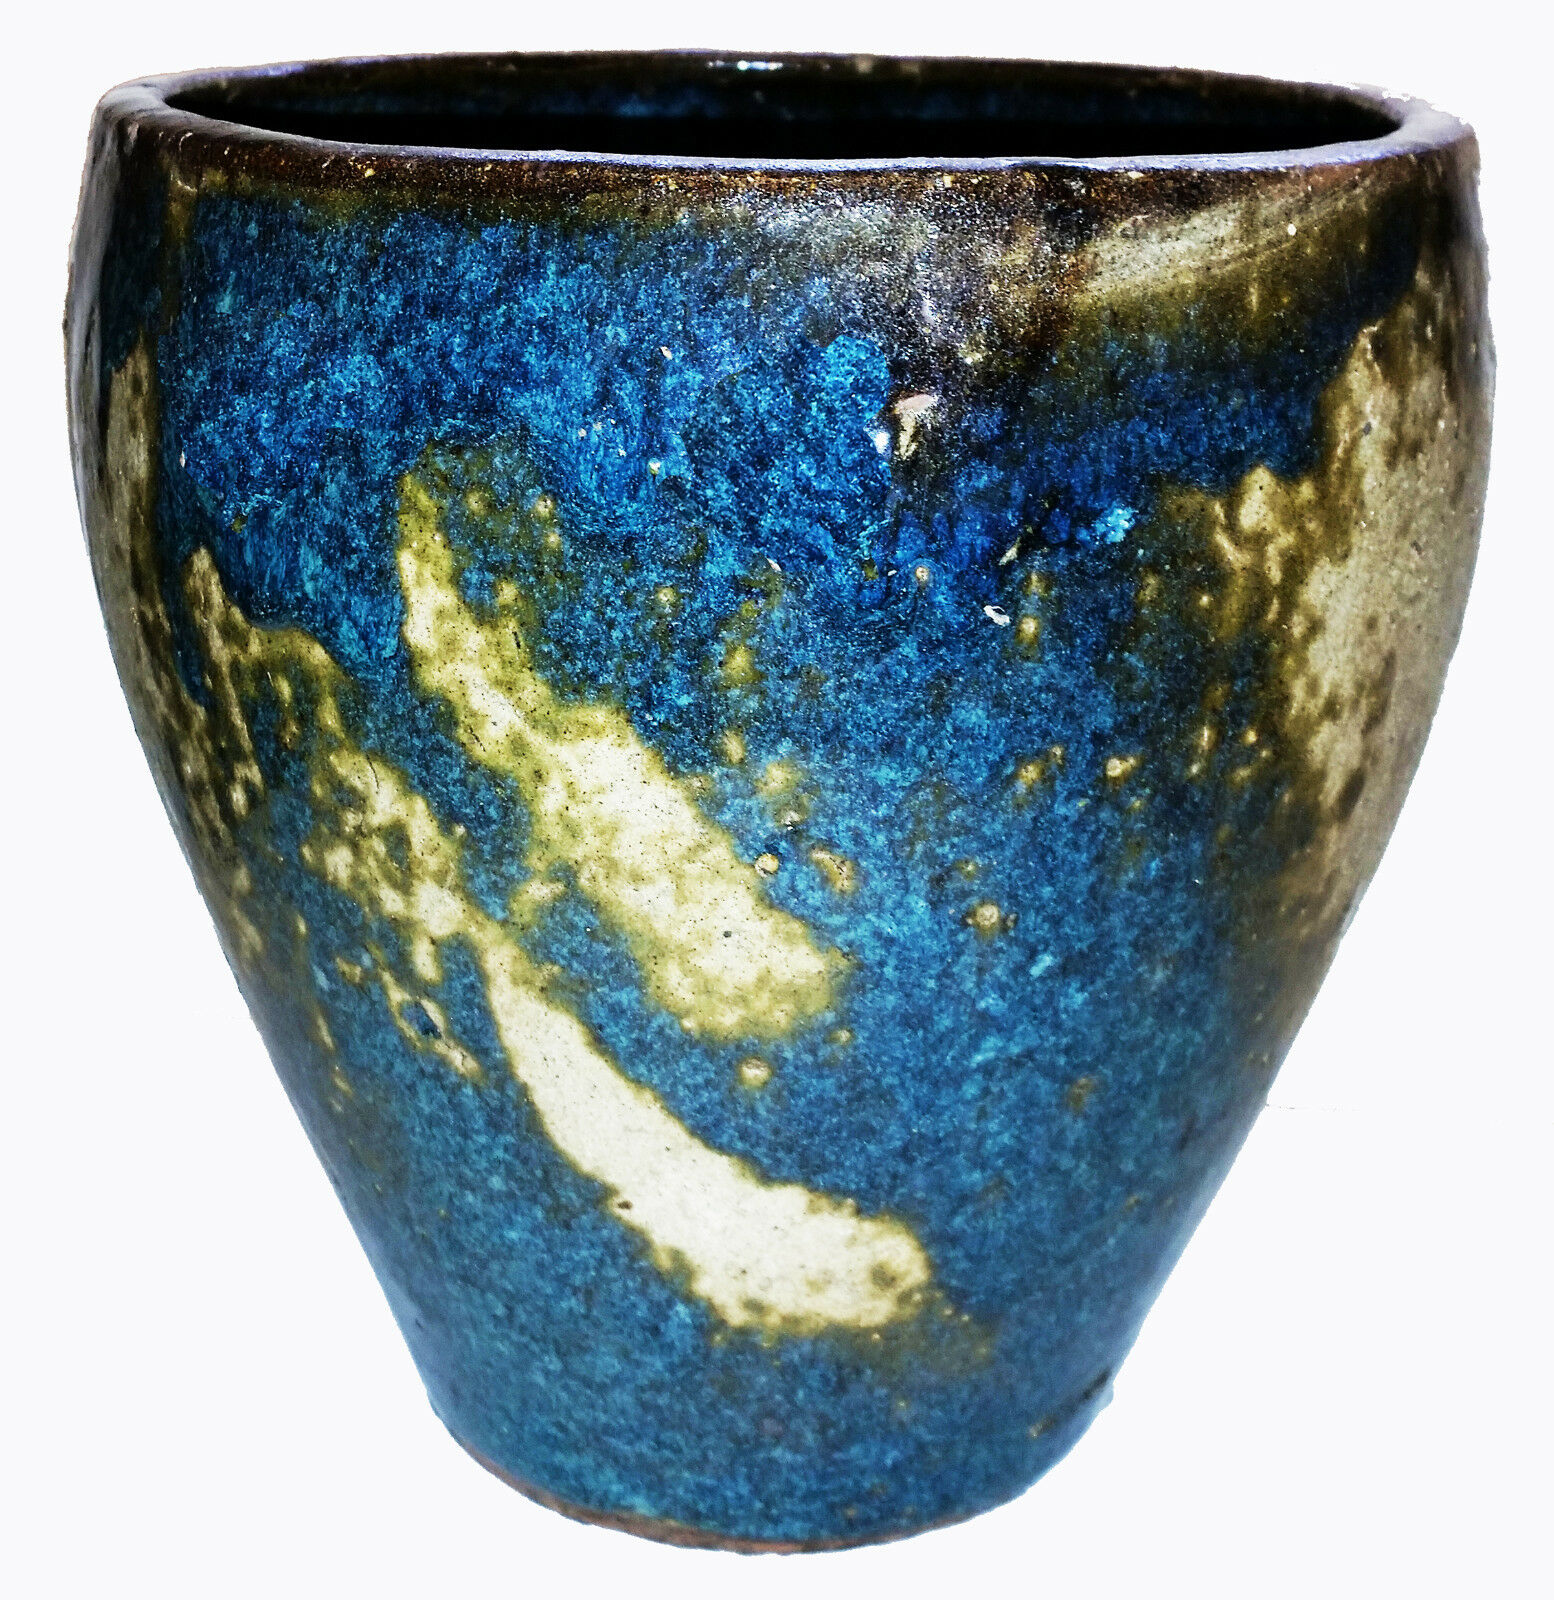 Rustic Chinese -Textured Artisan Pottery - 9